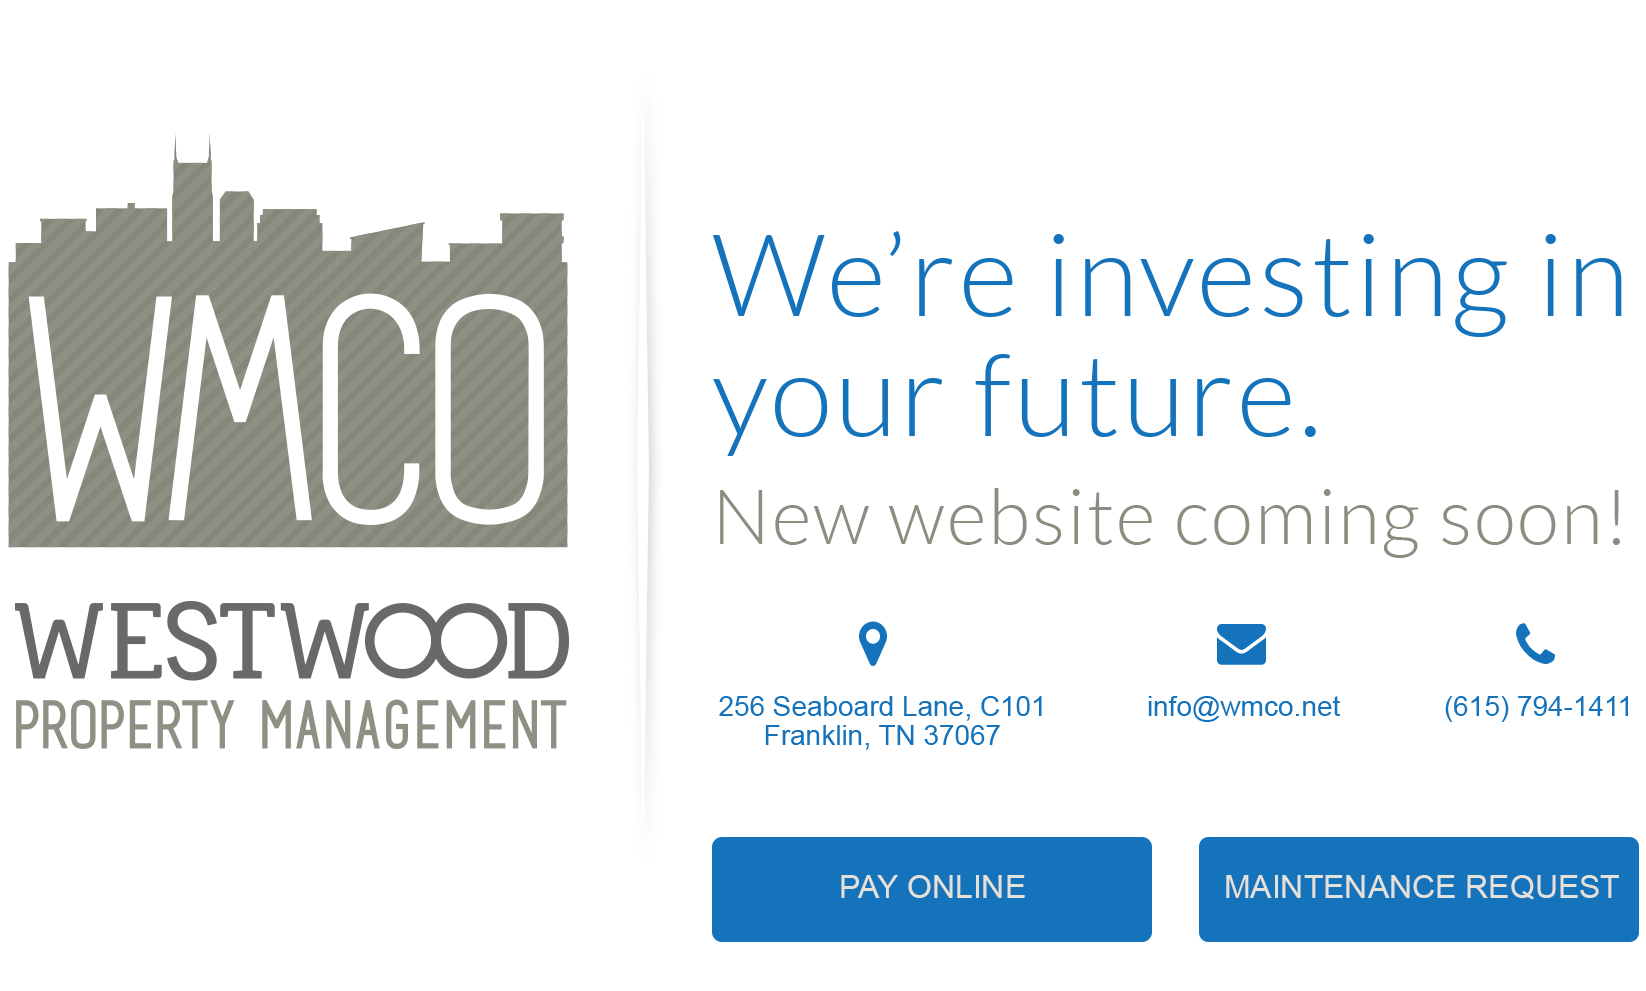 Westwood Property Management